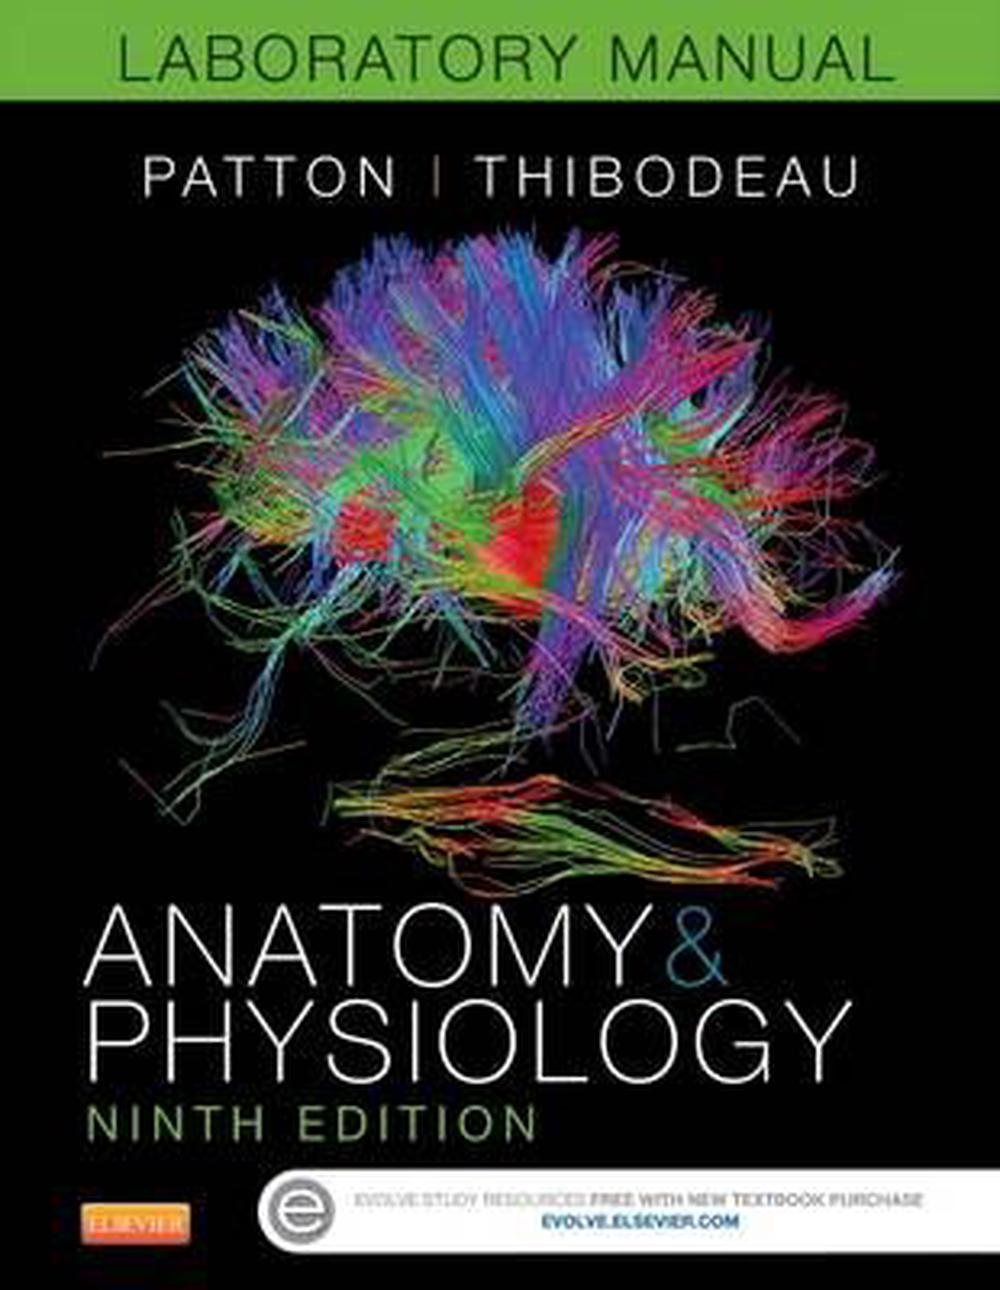 Anatomy & Physiology Laboratory Manual and E-Labs by Kevin Patton ...